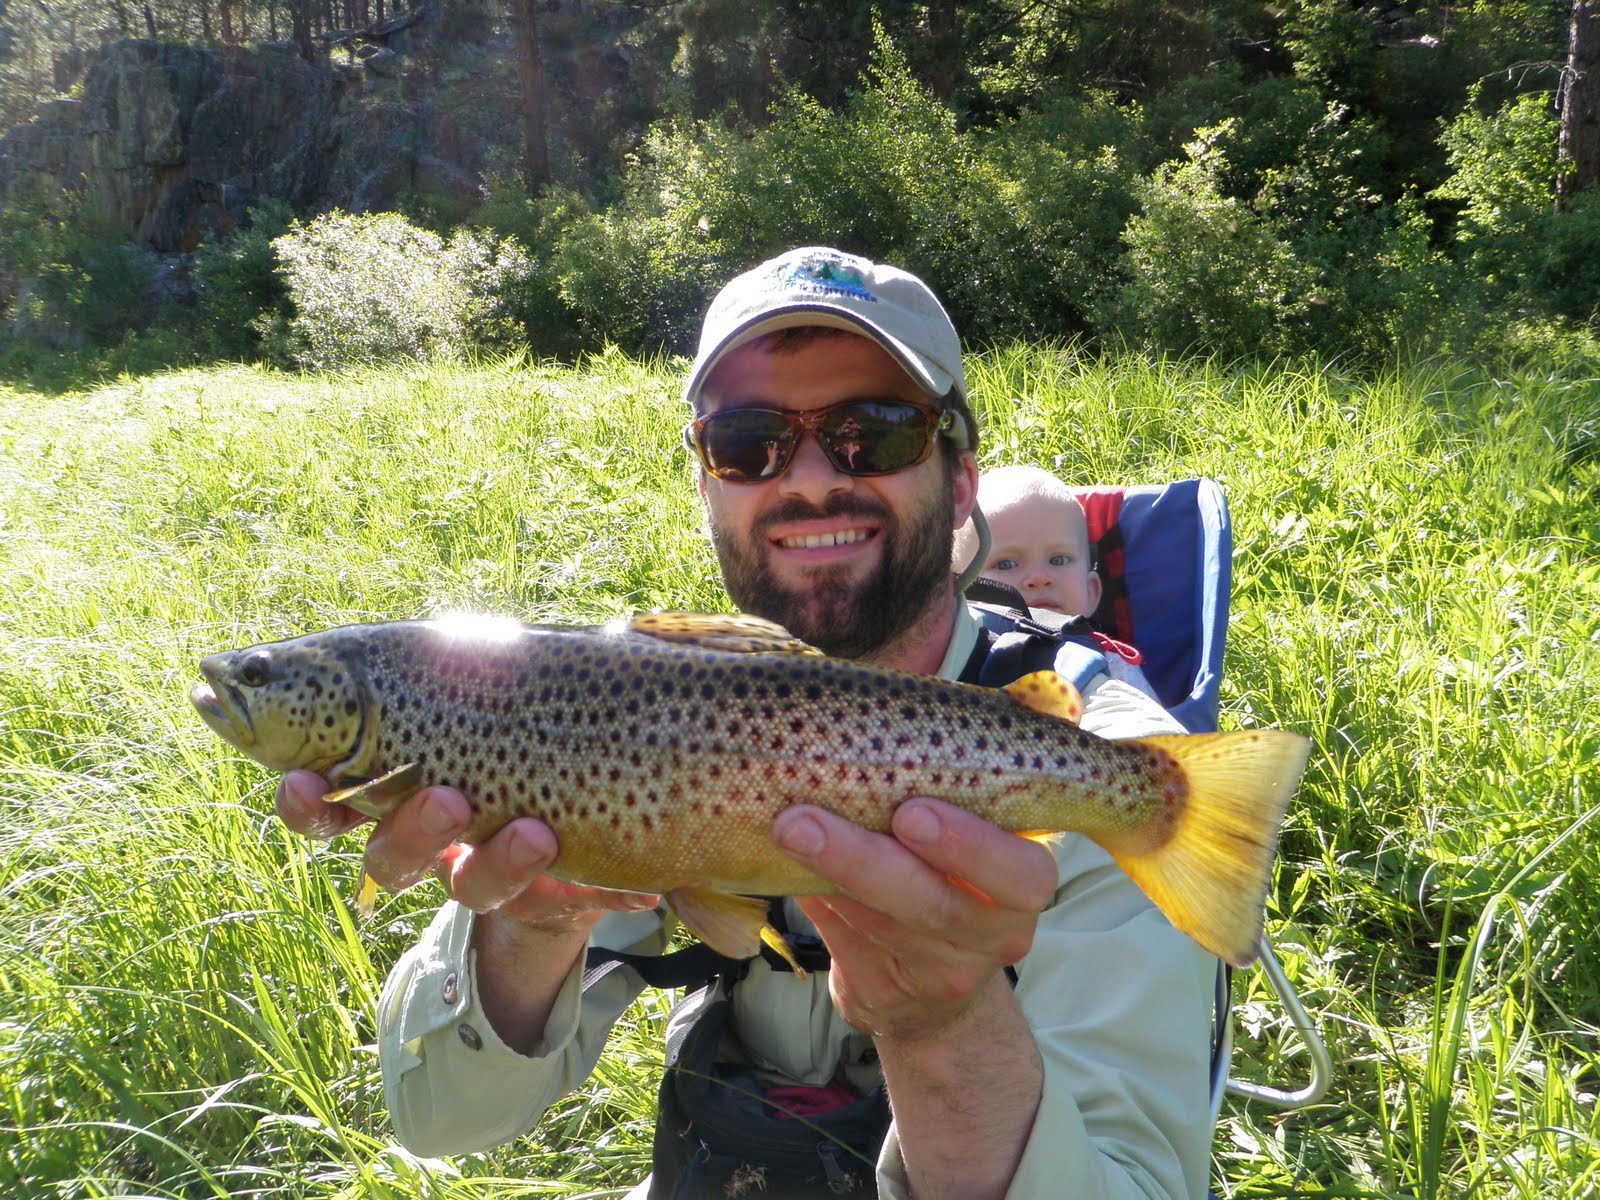 Black hills fly fishing favorite fish to catch on the fly for Fly fishing south dakota